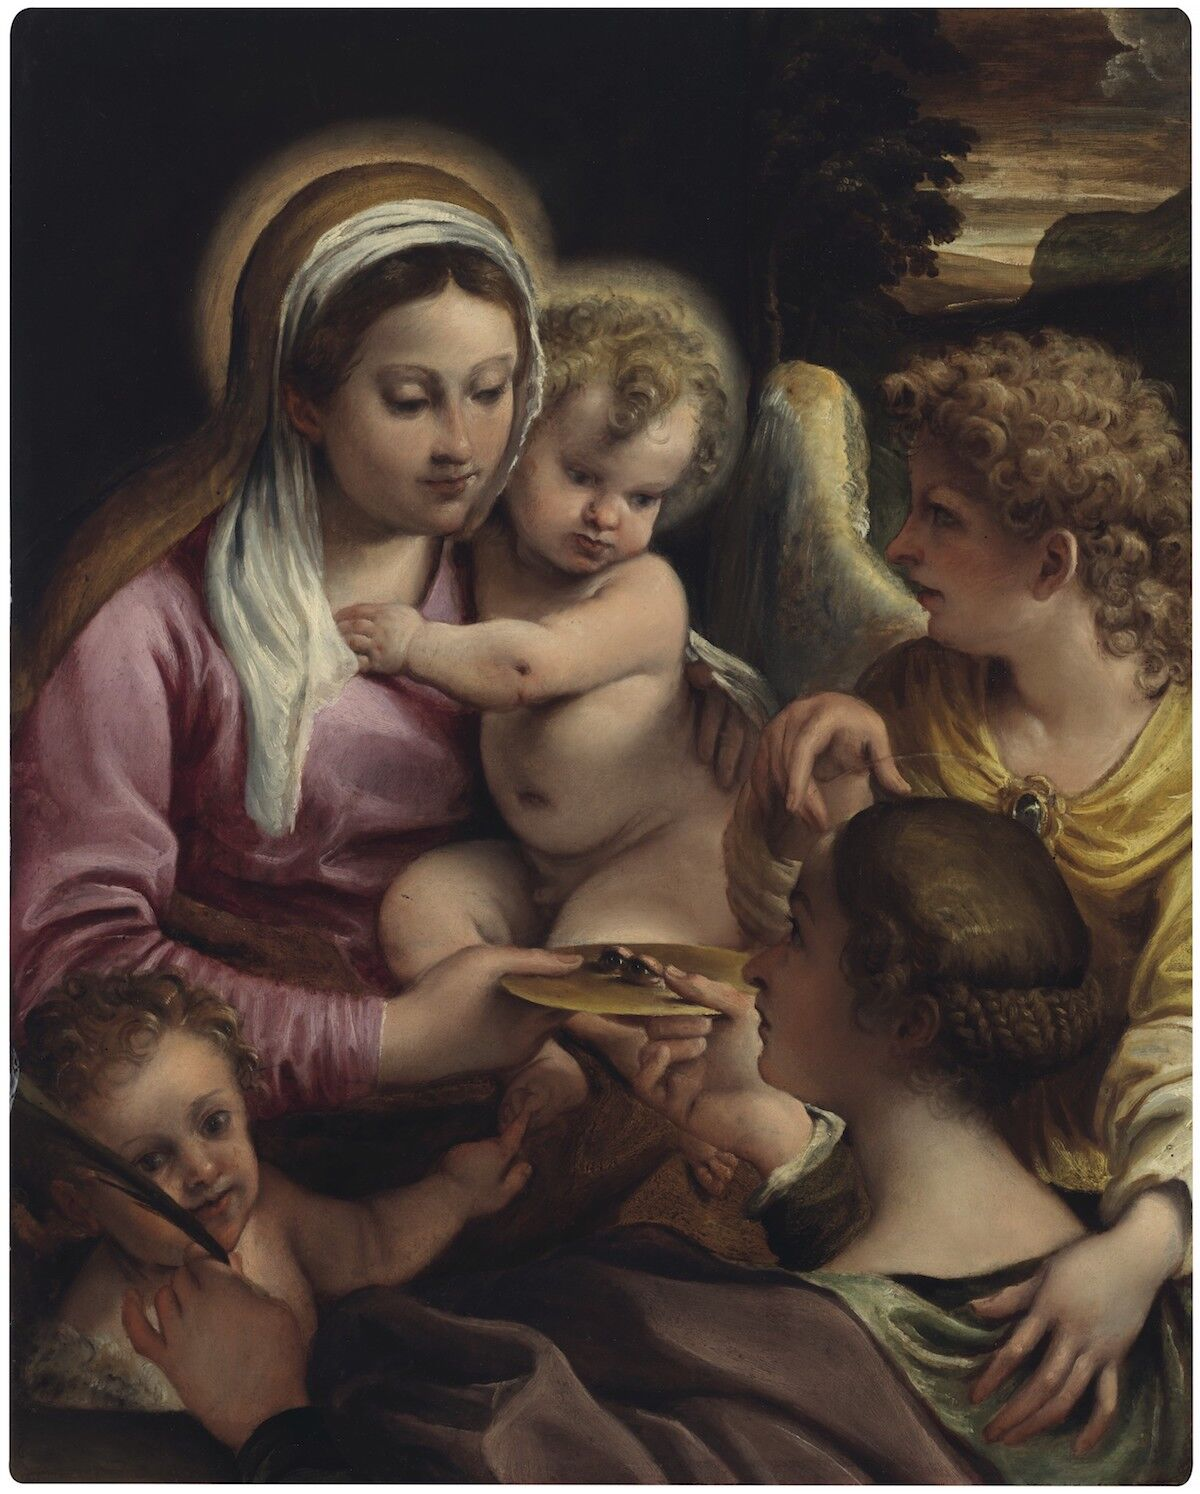 Annibale Carracci, Virgin Child with Saint Lucy and the Young Saint John the Baptist. Est. around $4 million. Courtesy Christie's.